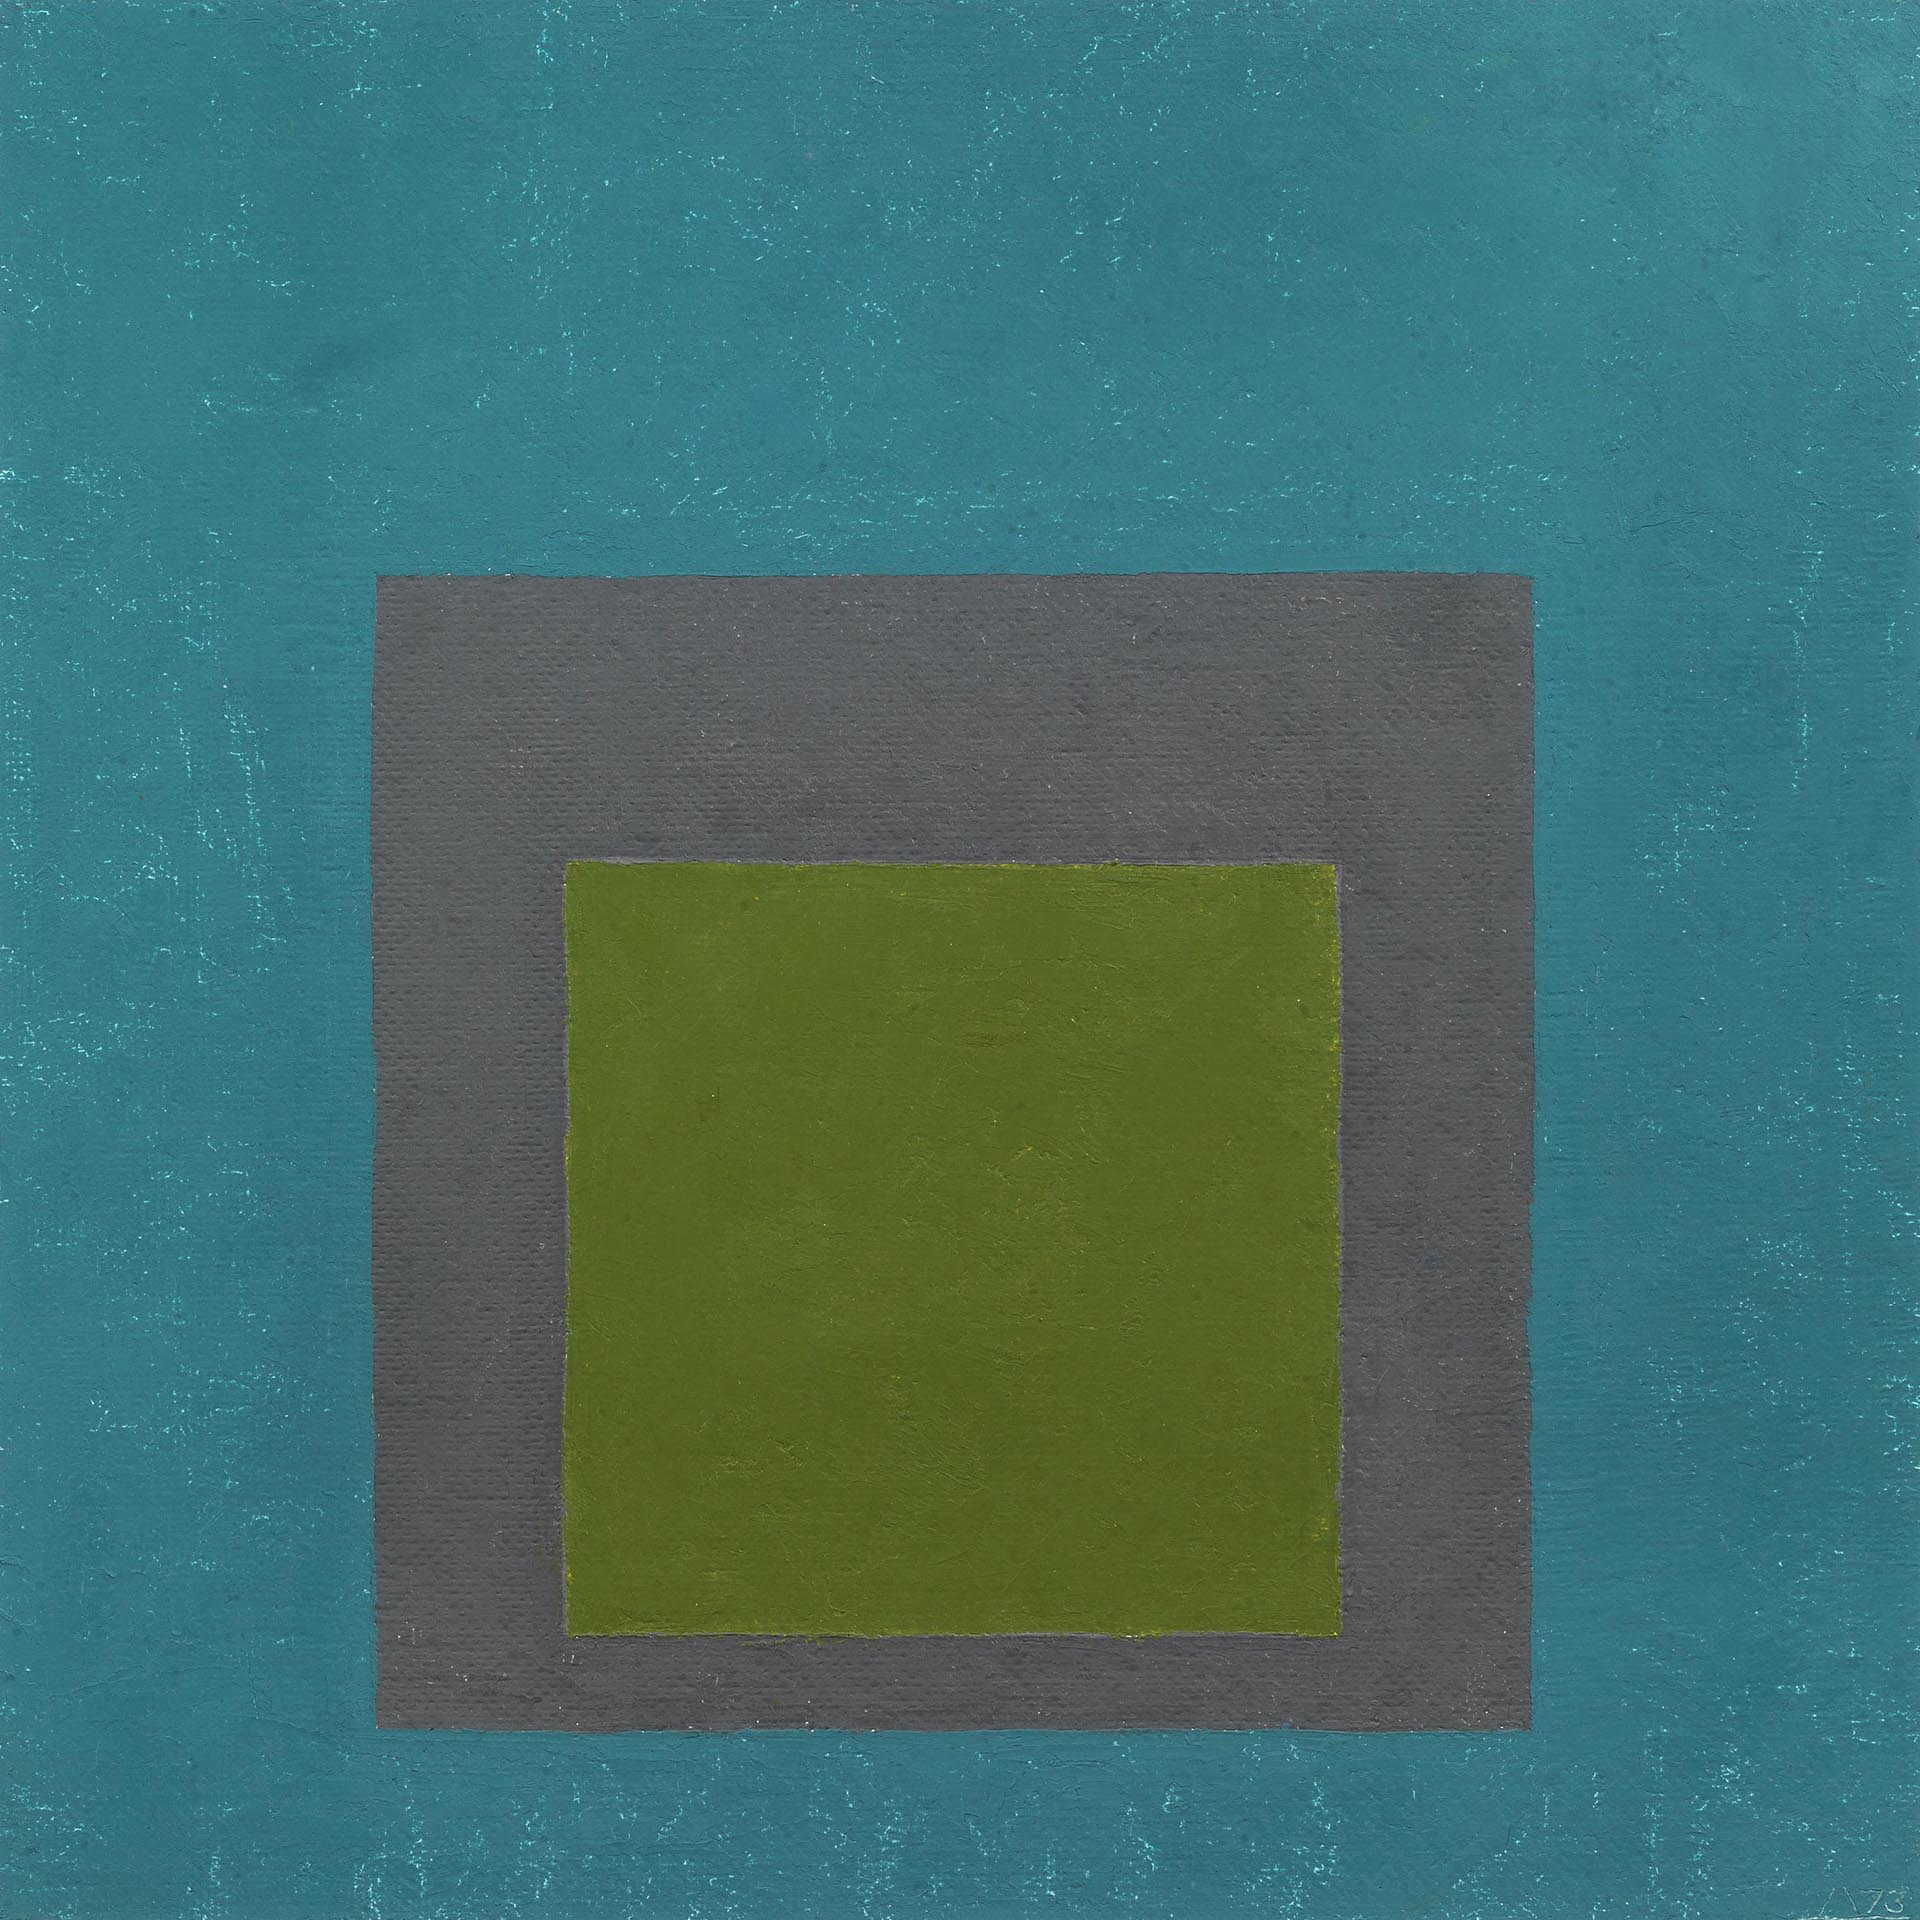 Albers, Study for Homage to the Square, 1973, 40x40 cm